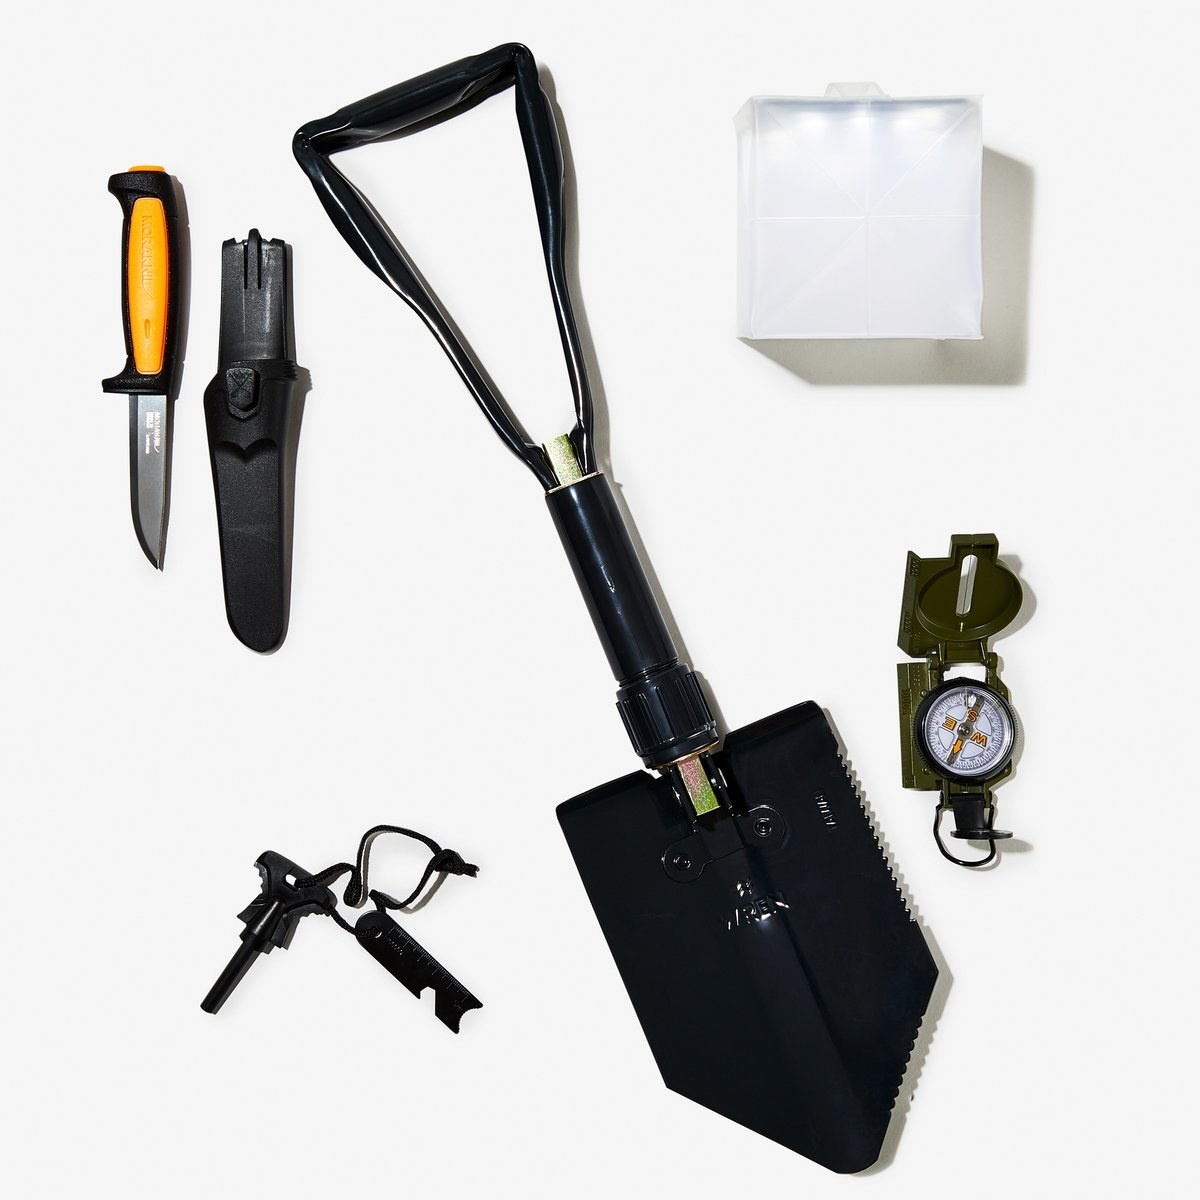 Flatlay image of the kit with the five tools